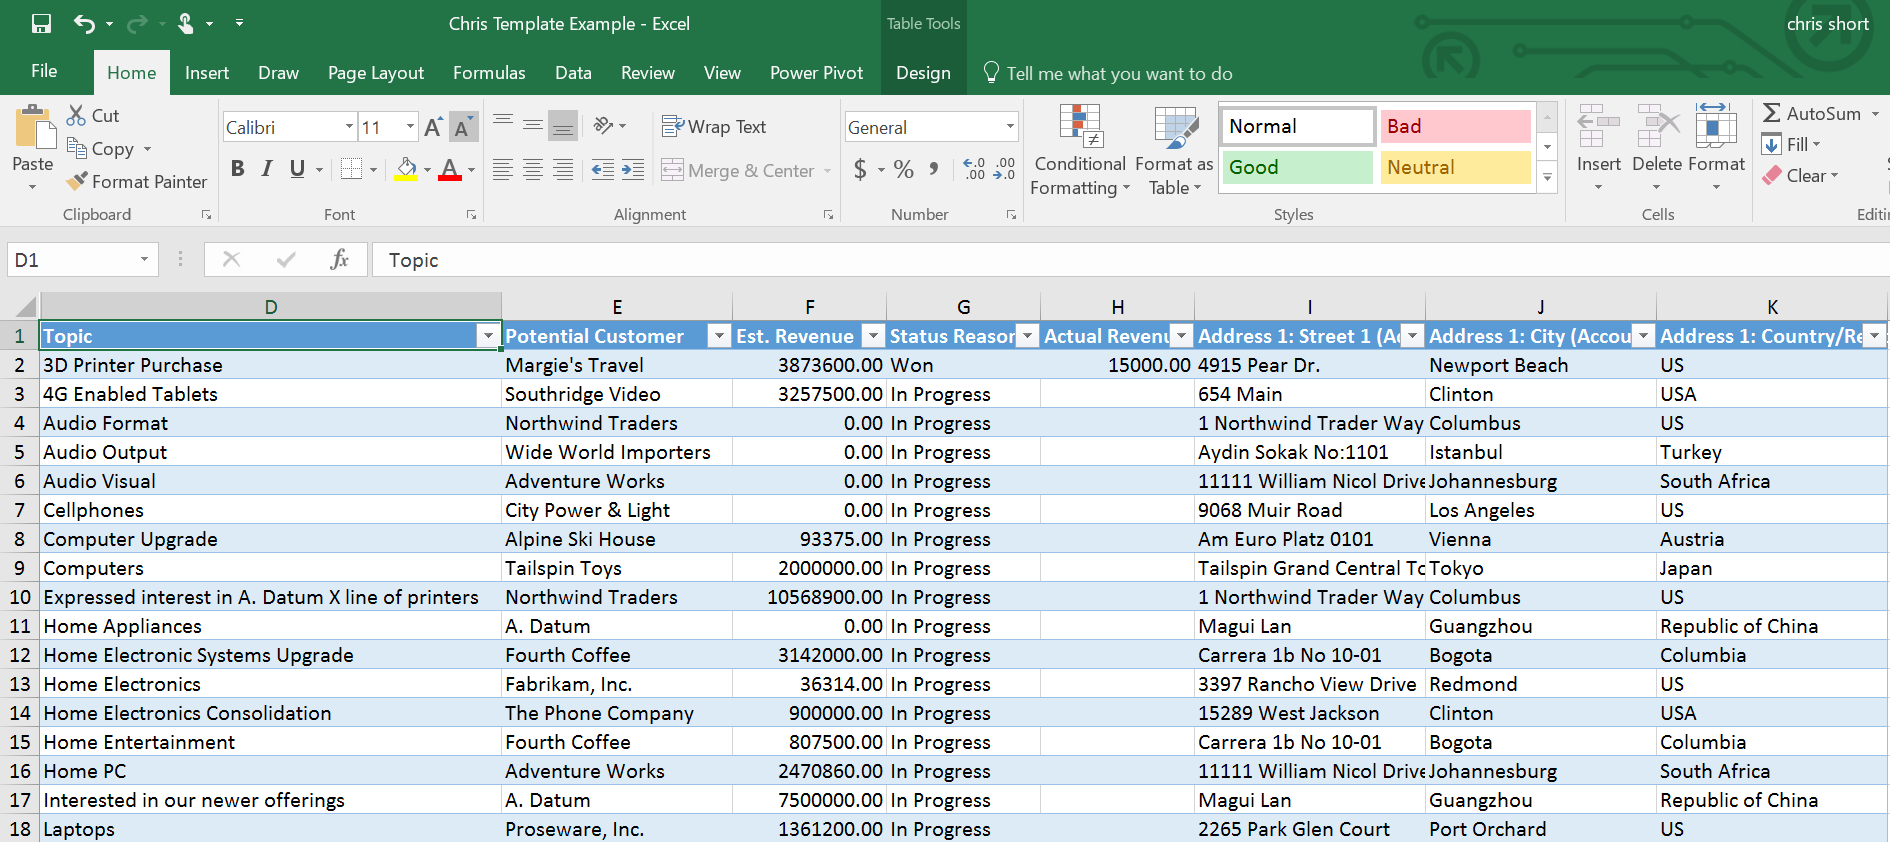 Microsoft Dynamics Crm & Microsoft Excel: Excel Templates, An Within Excel Crm Template Format